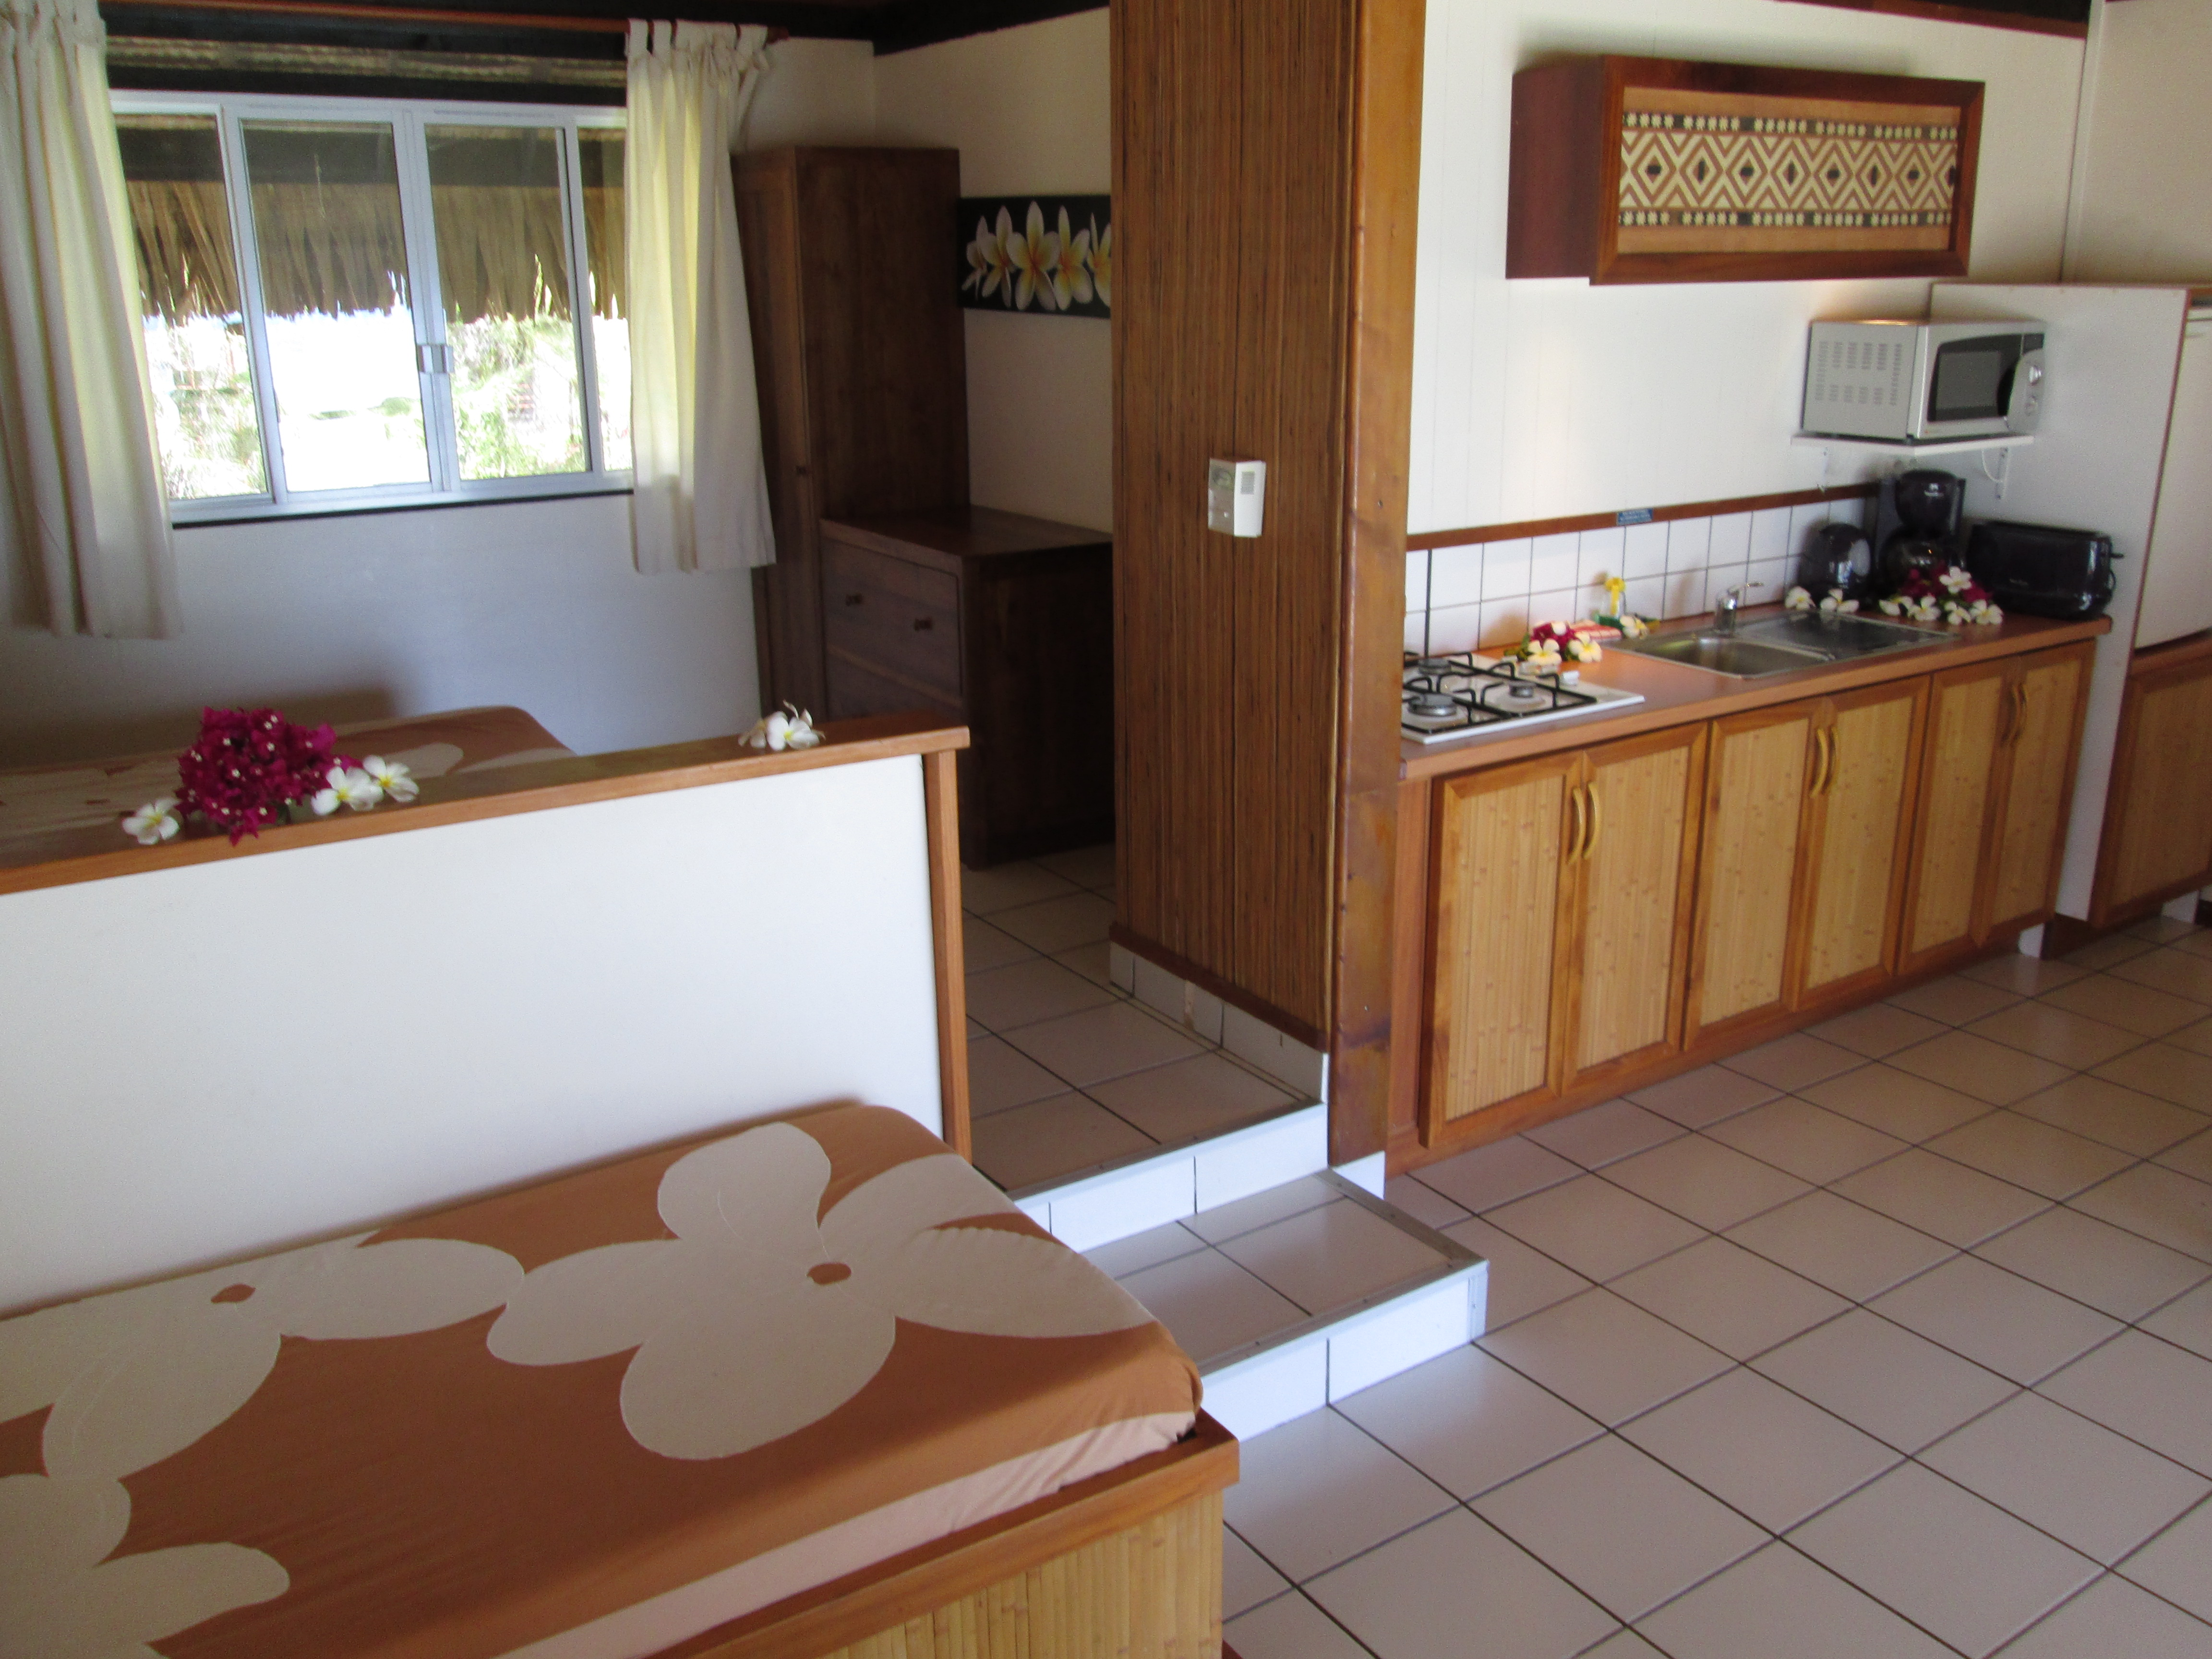 INTERIOR OF GARDEN BUNGALOW WITH KITCHEN AND BEACH BUNGALOW WITH KITCHEN